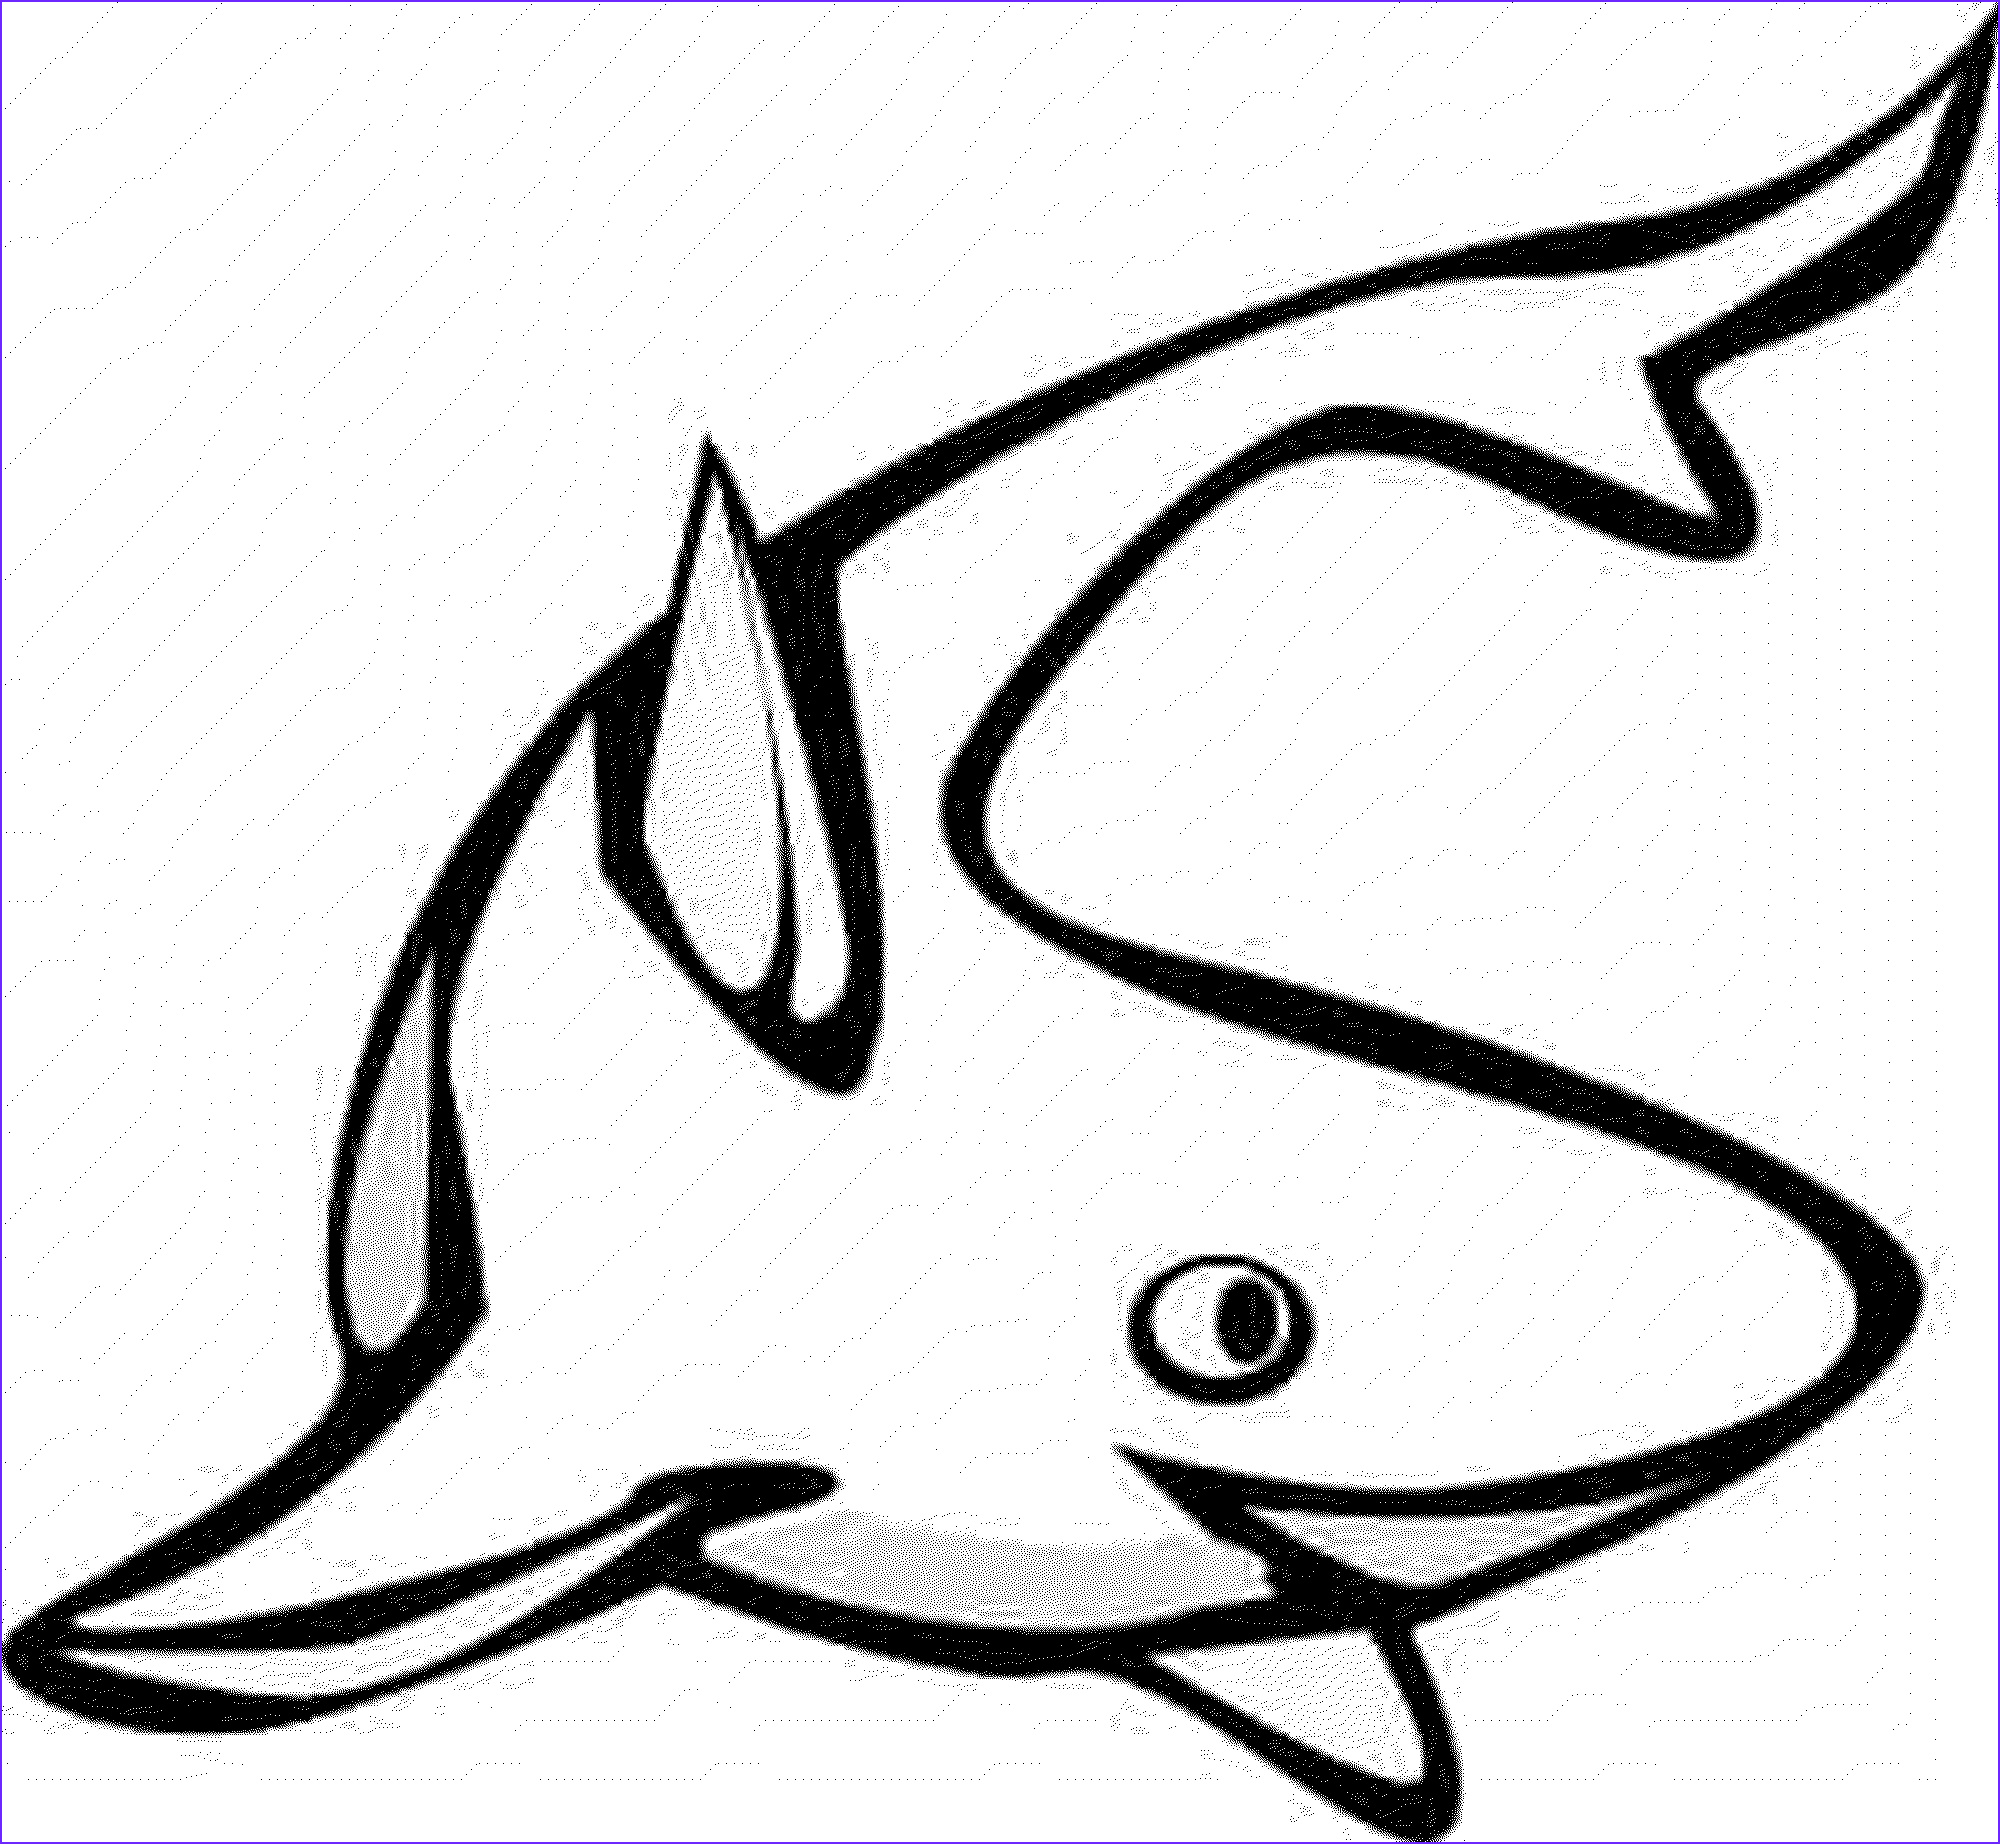 Fish Coloring Book Luxury Photography 29 Fish and Octopus Coloring Pages for Kids